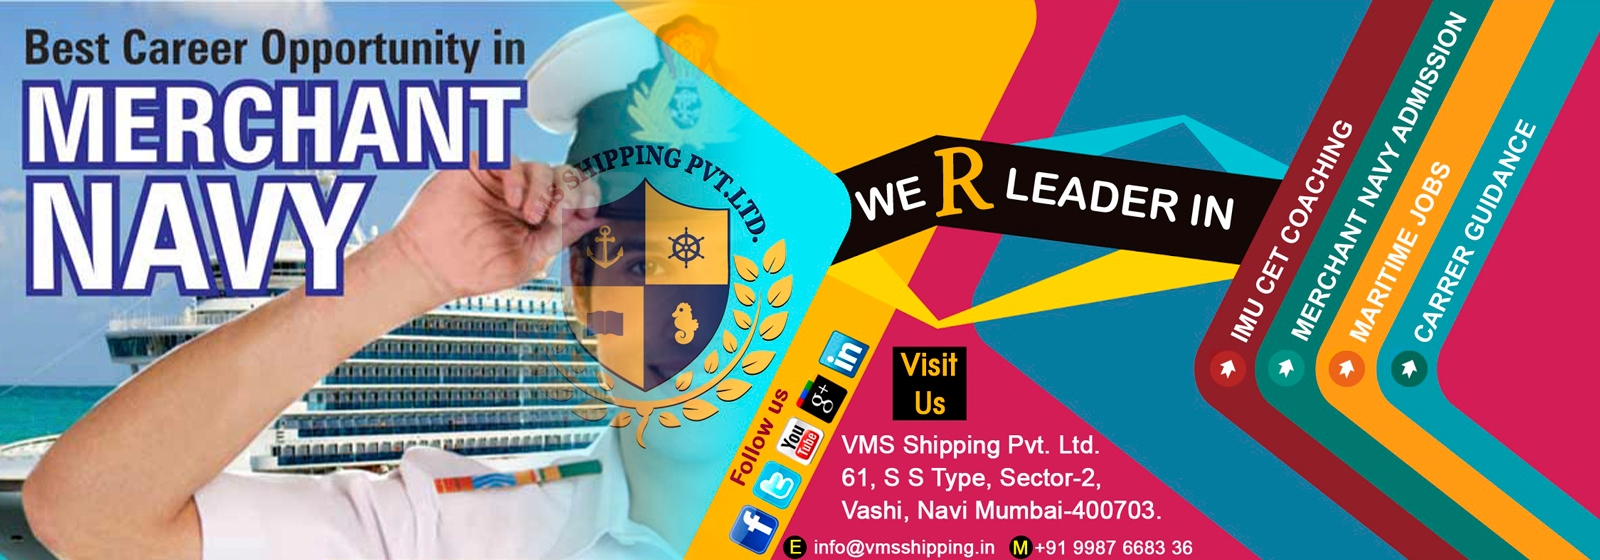 Varren Marines Shipping Pvt Ltd (@gpratingcourses) Cover Image